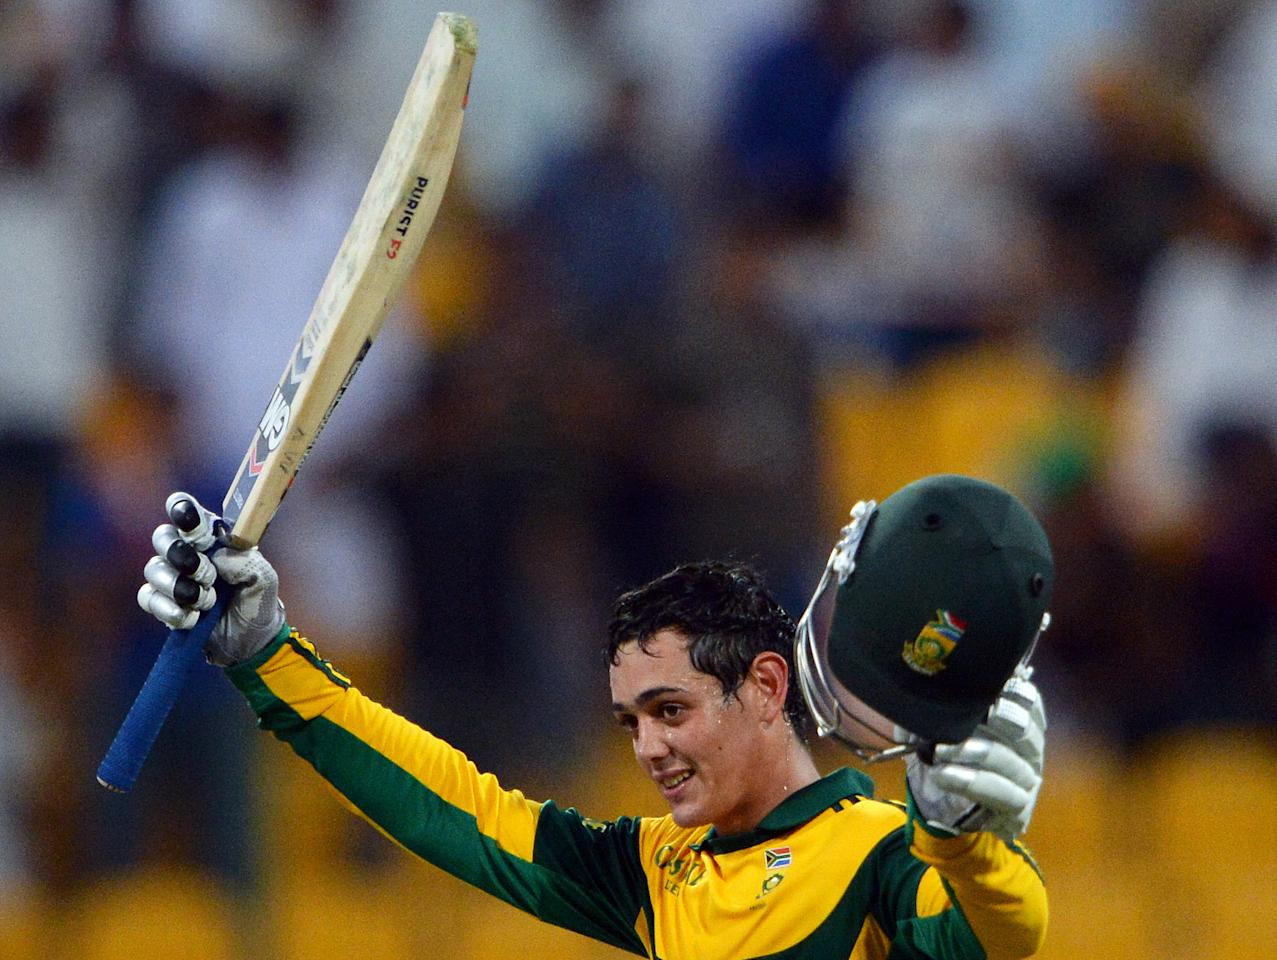 South African opener batsman Quinton de Kock celebrates after make his century (100) runs during fourth day-night international in Sheikh Zayed Cricket Stadium in Abu Dhabi on November 8, 2013.  South African captain AB de Villiers won the toss and decided to bat. South Africa lead the five-match series with 2-1. AFP PHOTO/ Asif HASSAN        (Photo credit should read ASIF HASSAN/AFP/Getty Images)